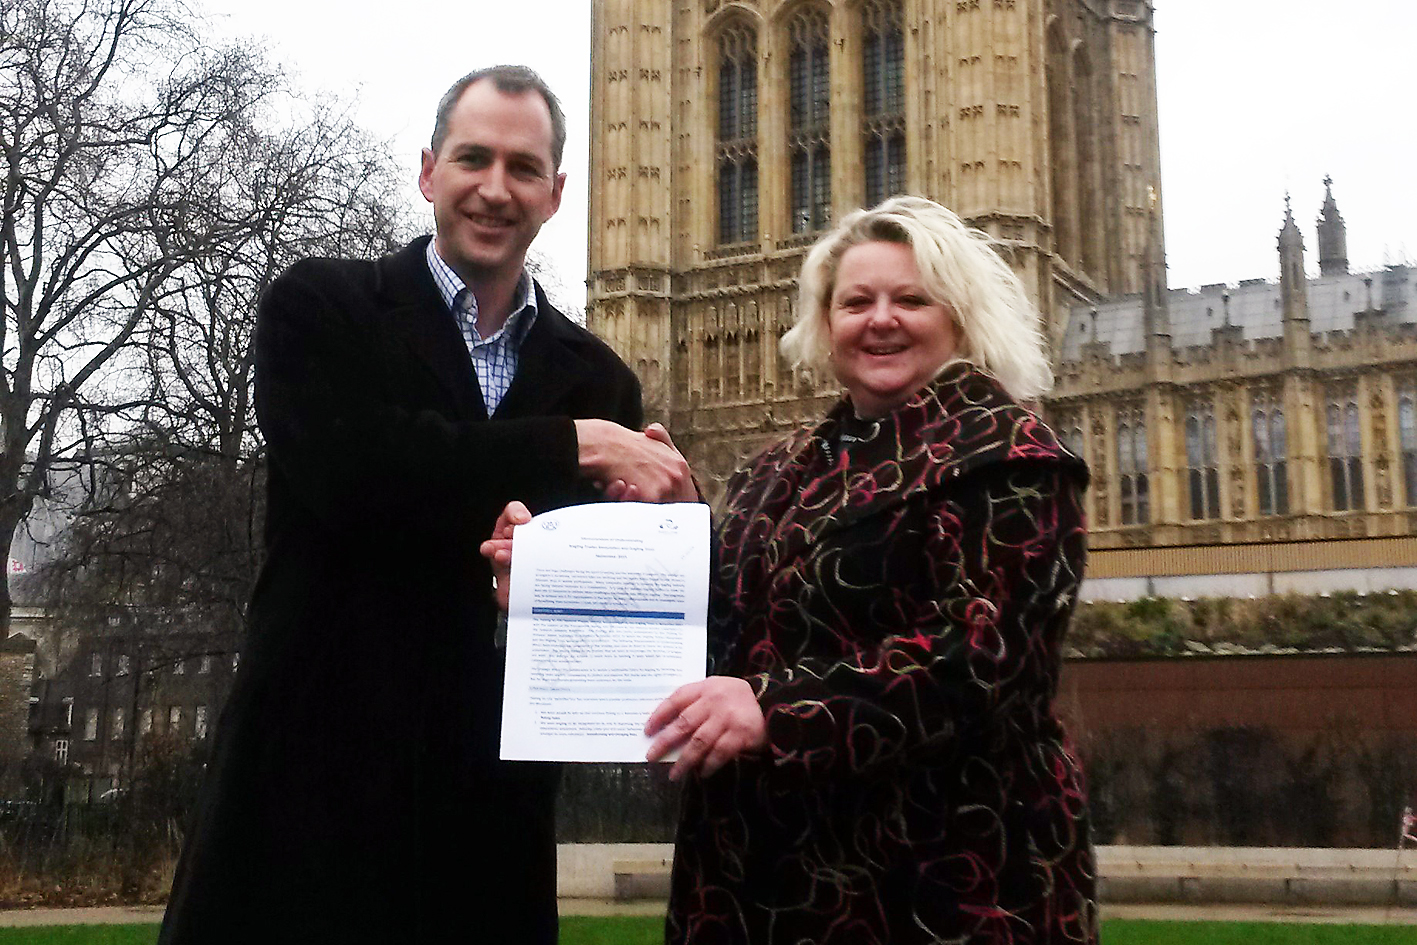 Mark Lloyd, CEO Angling Trust and Naidre Werner, Chair Angling Trades Association holding MoU agreement outside the Houses of Parliament